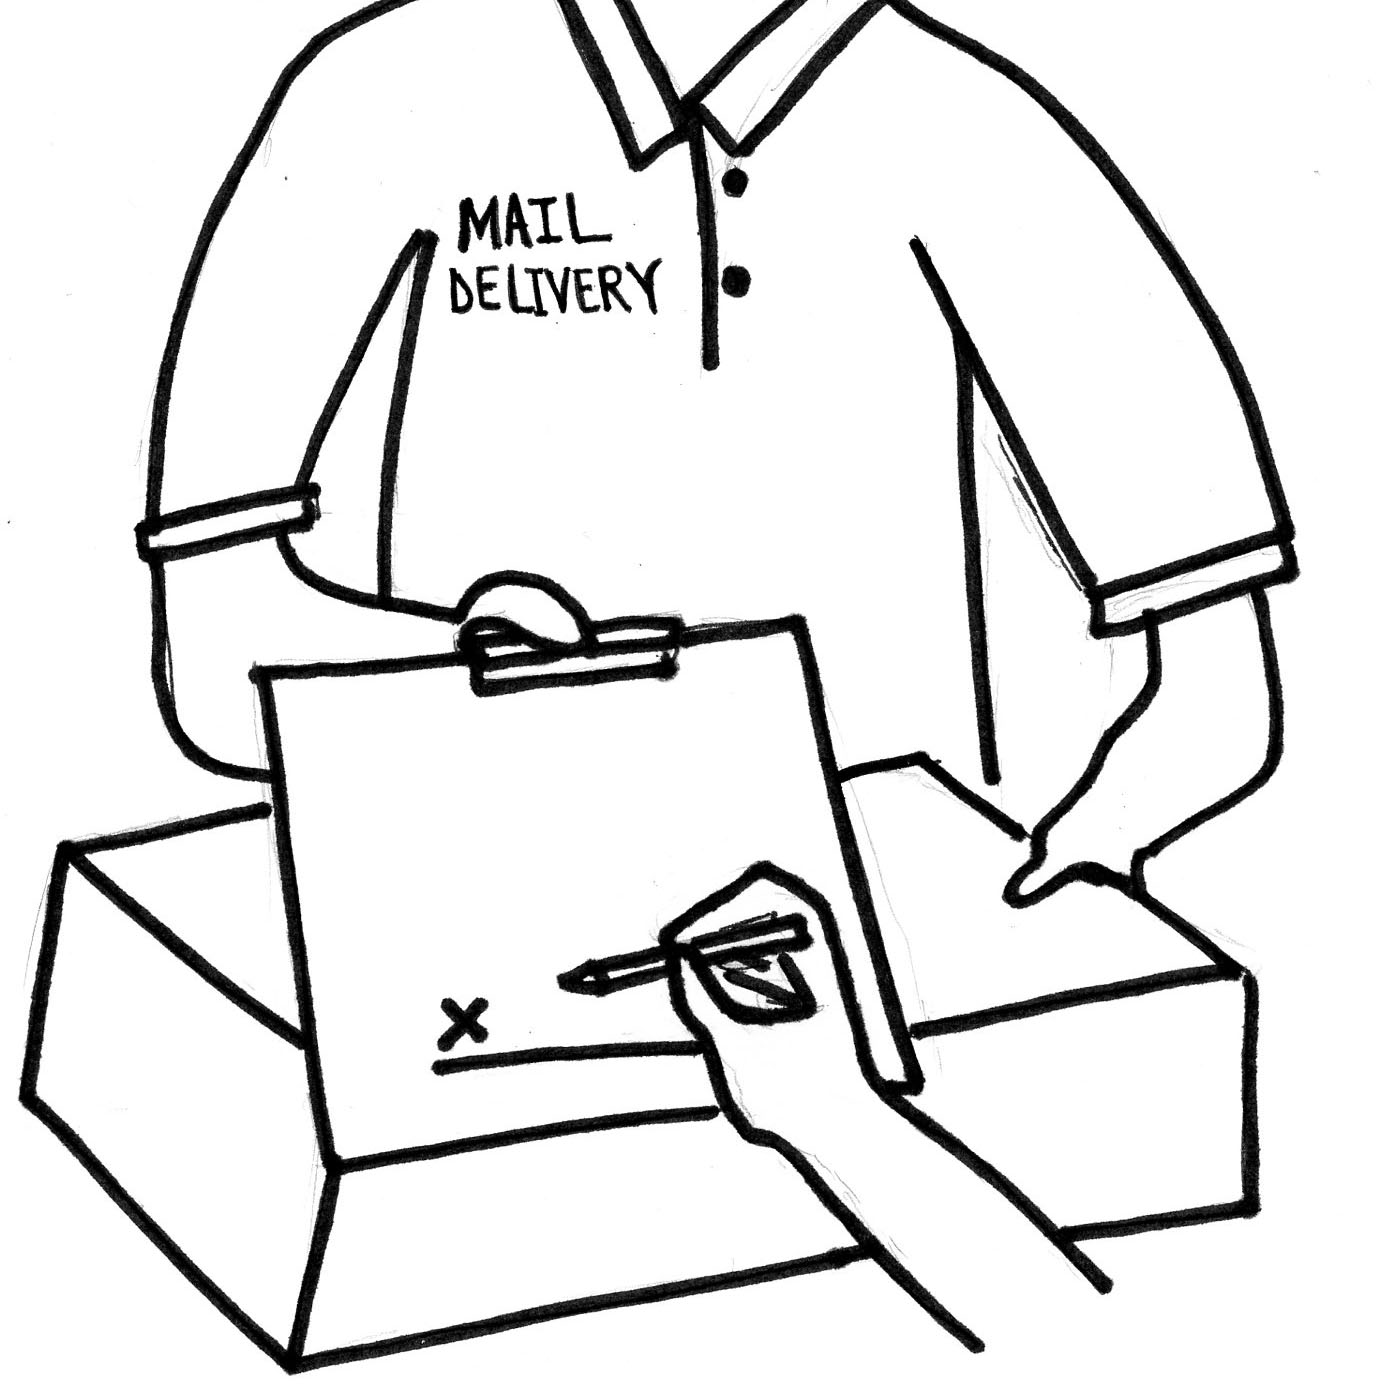 After signing for a package, mail deliveries take different paths through the school before reaching their destinations.